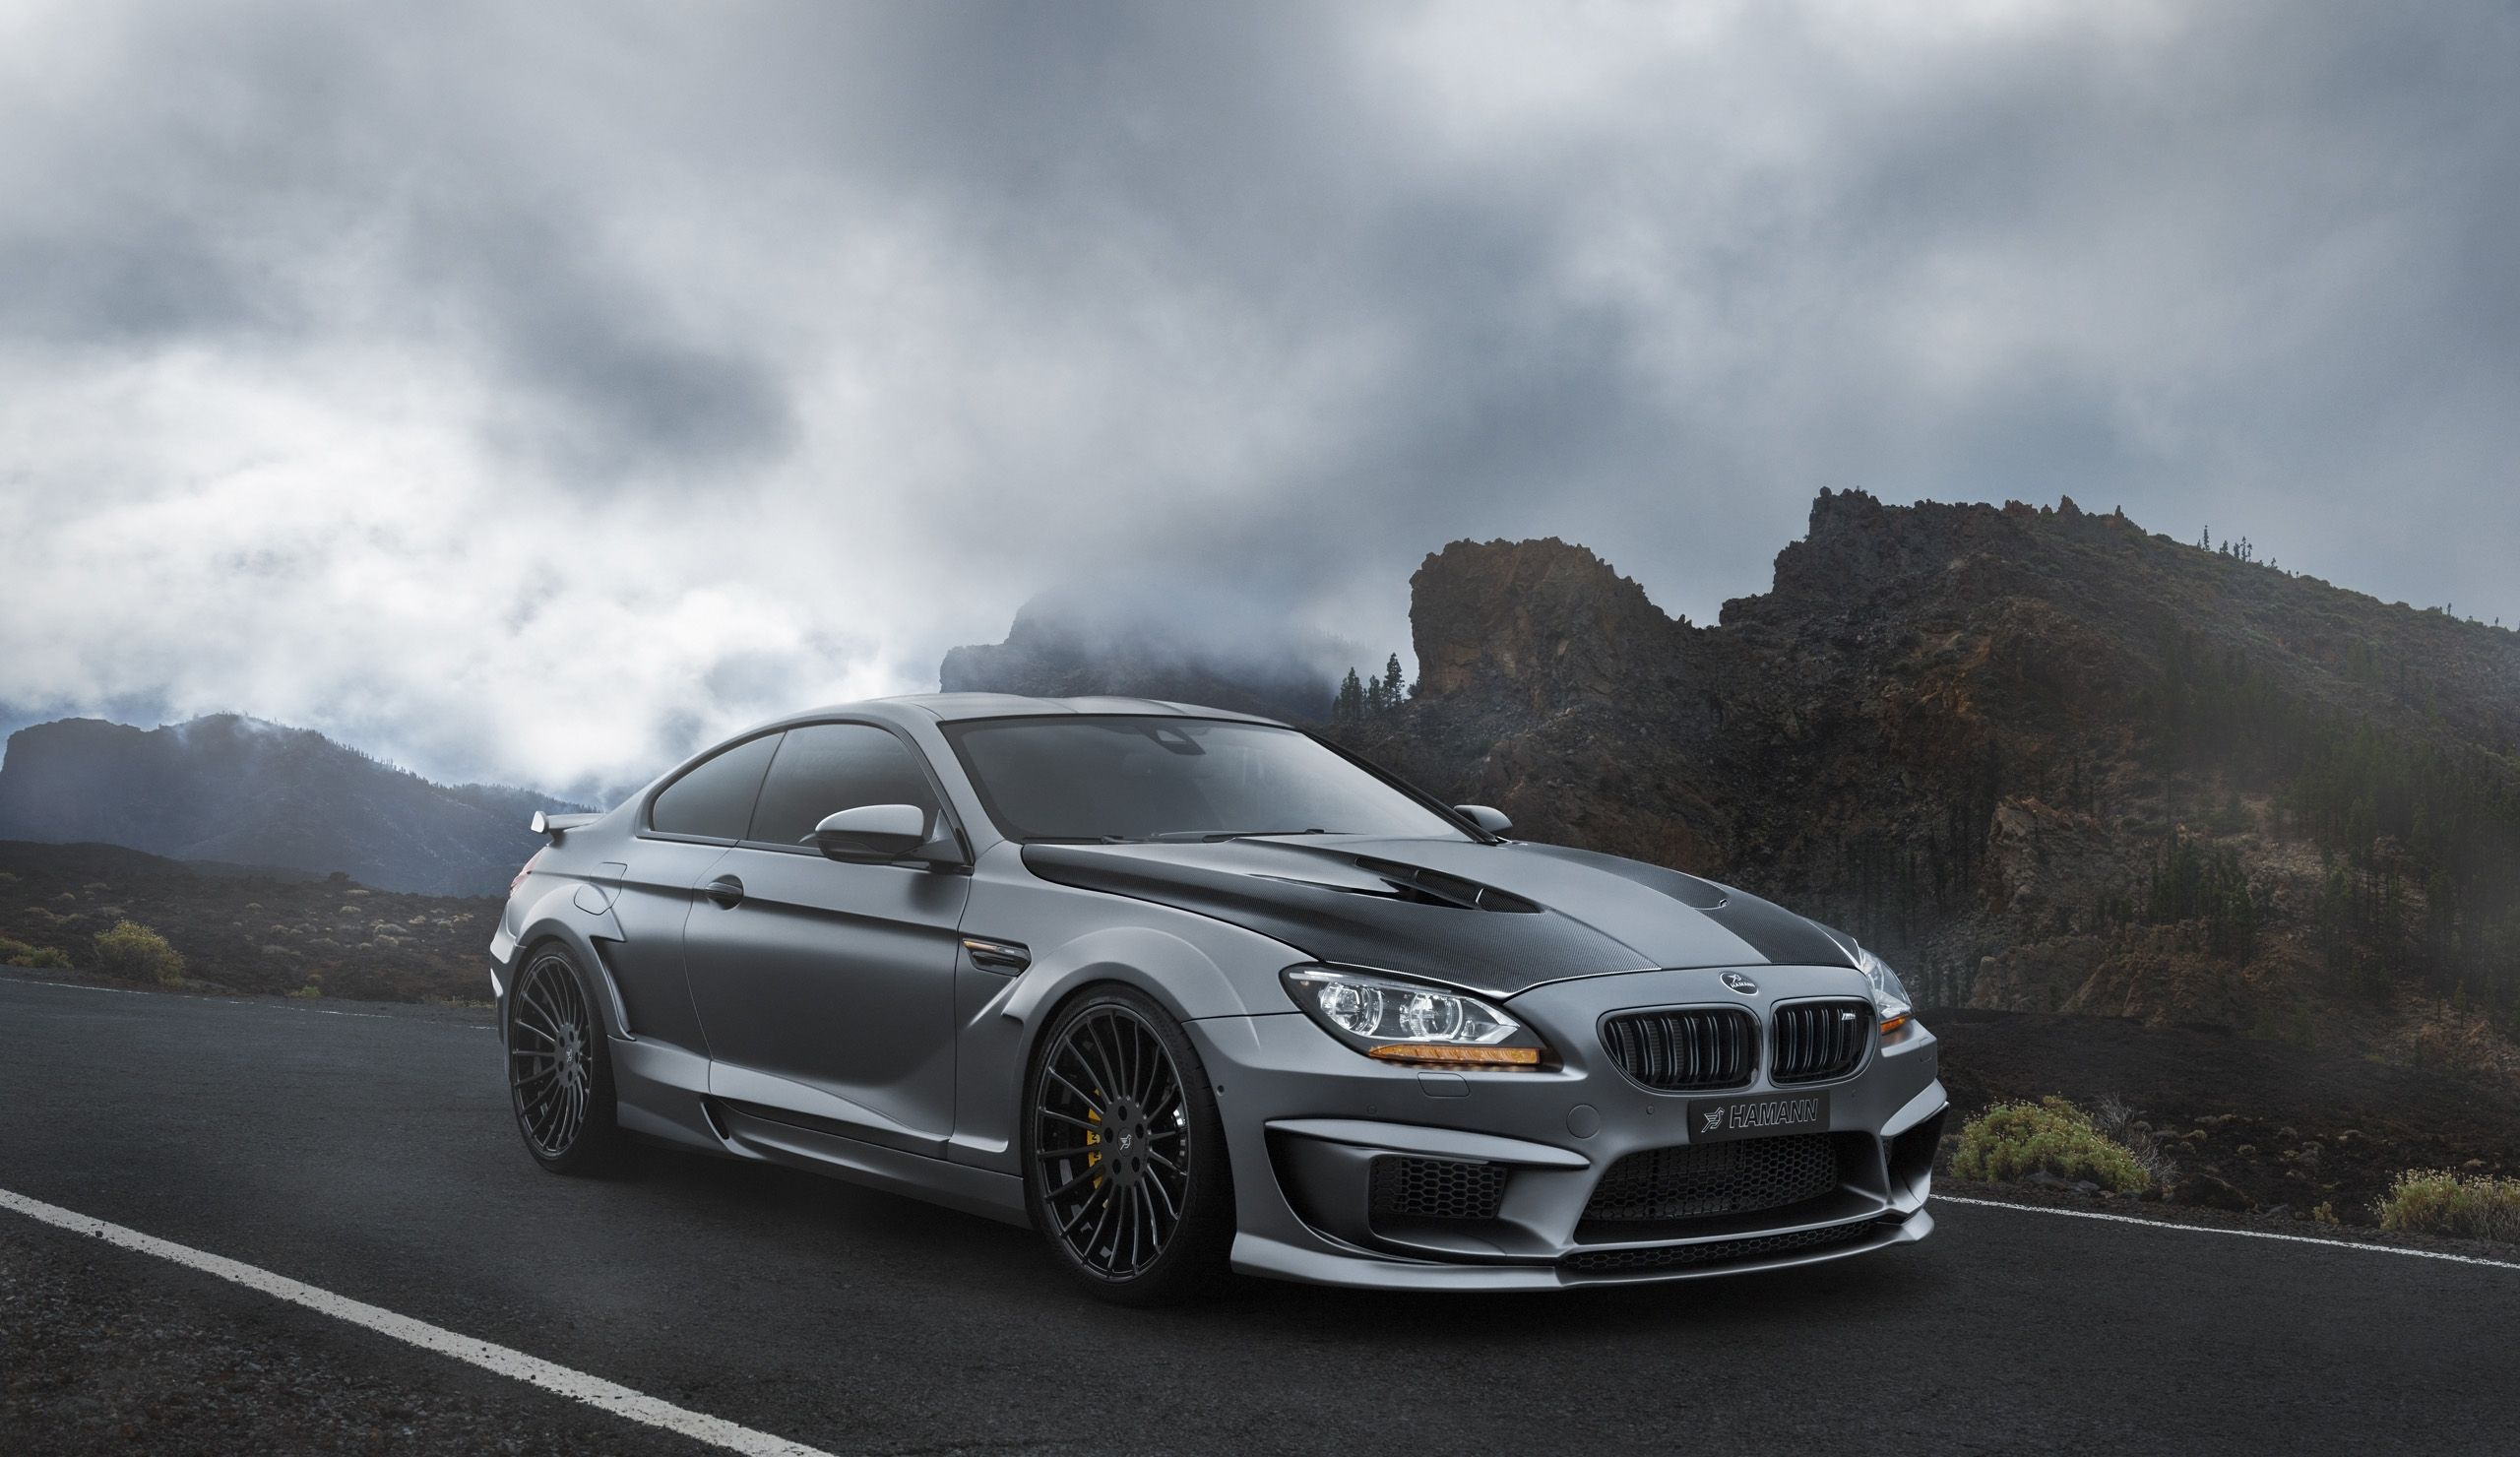 Pin By Wallpaper4rest On Cars Bmw M6 Bmw Wallpapers Bmw